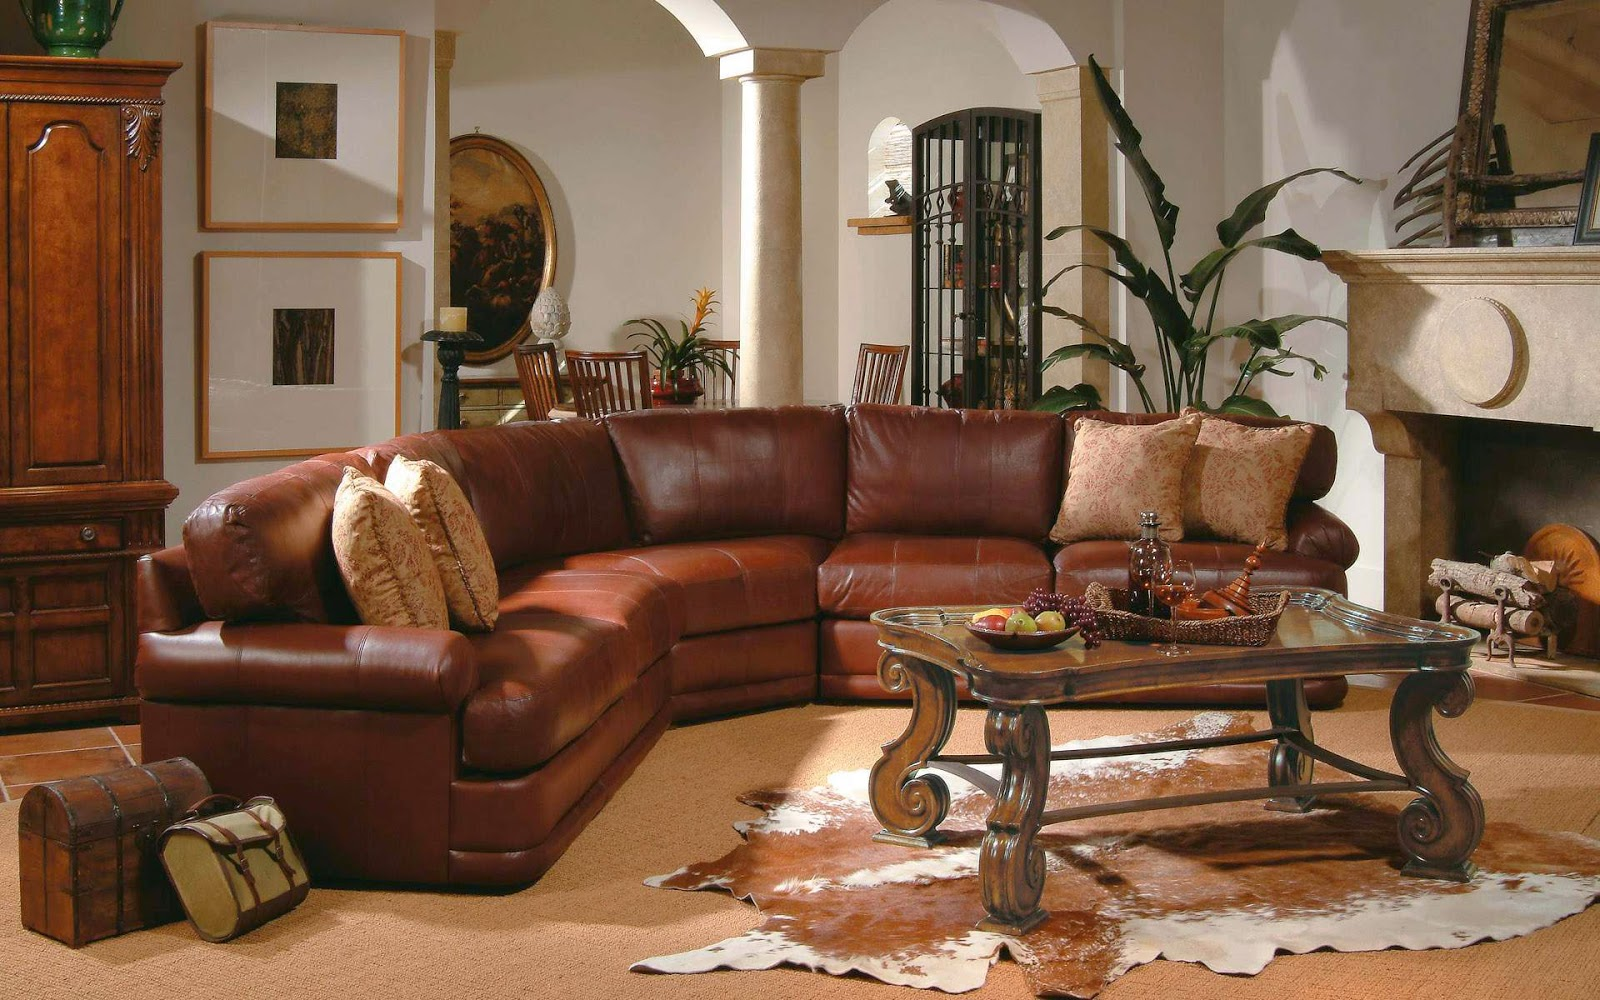 6 living room decor ideas with sectional home design hd for Living room decor ideas